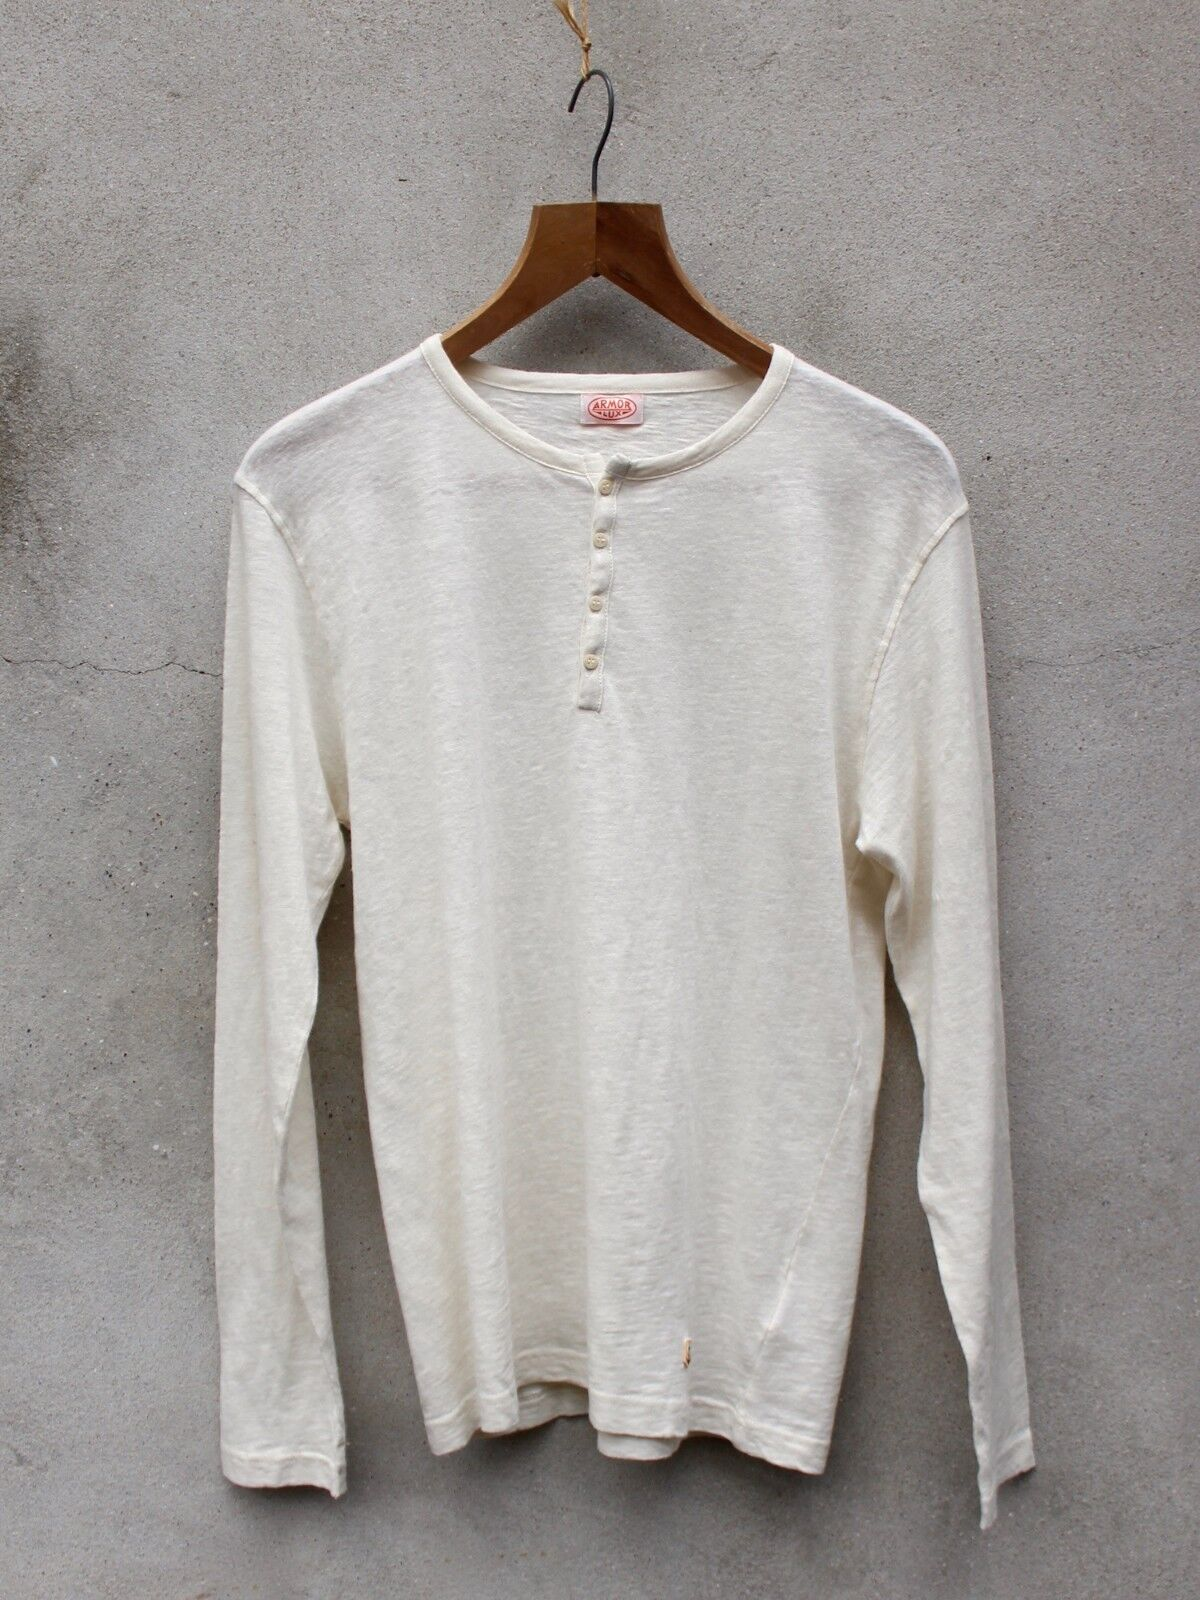 Grandfather Top by Armor-lux - 100% Linen   Cotton - Made in France